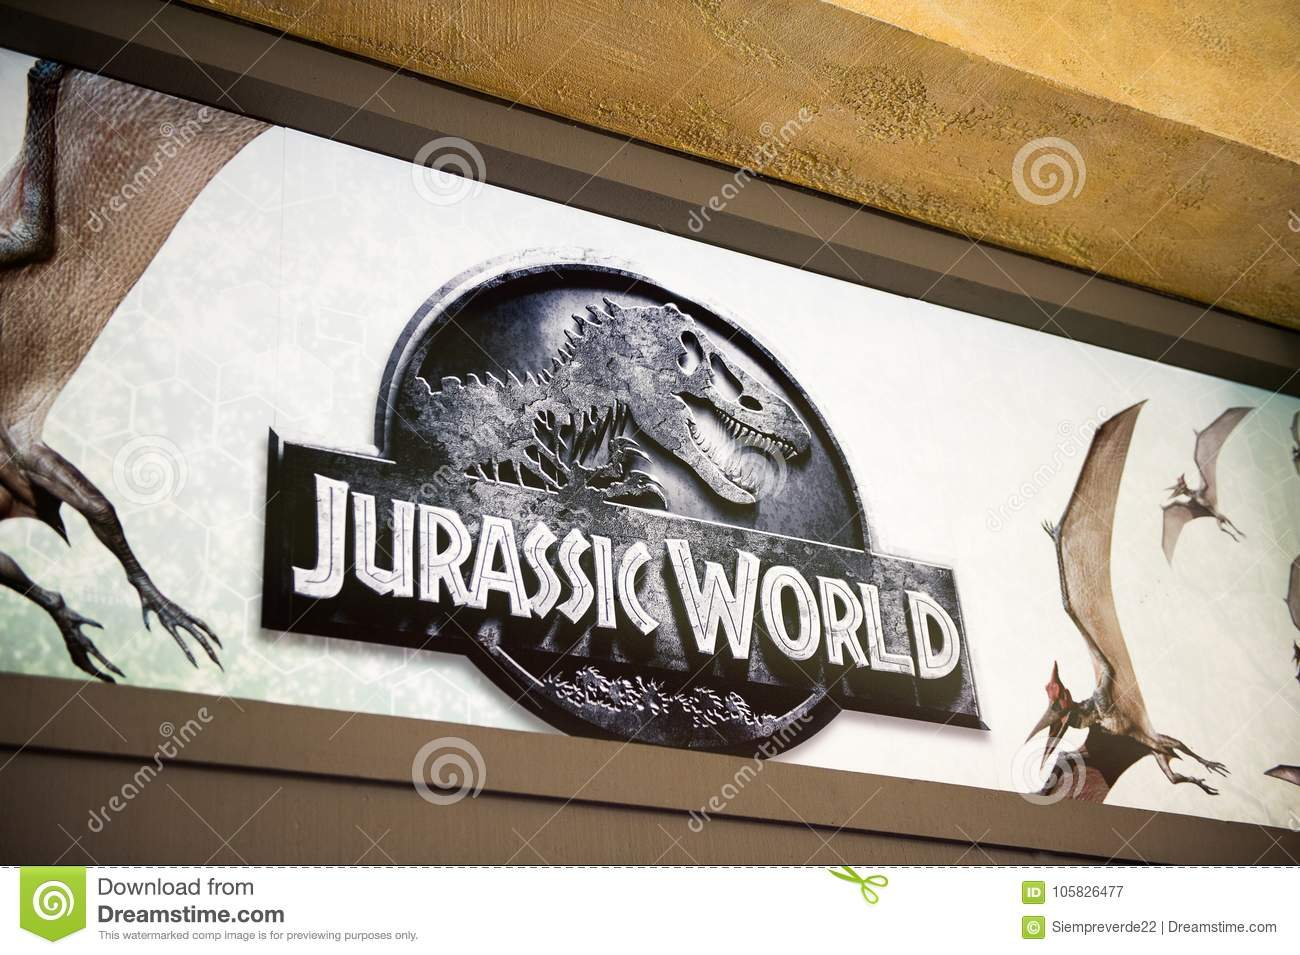 Los Angeles Usa Sep 27 2015 Jurassic World Logo In Jurassic Park Area In The Universal Studios Hollywood Park Jurassic Park Is A 1993 American